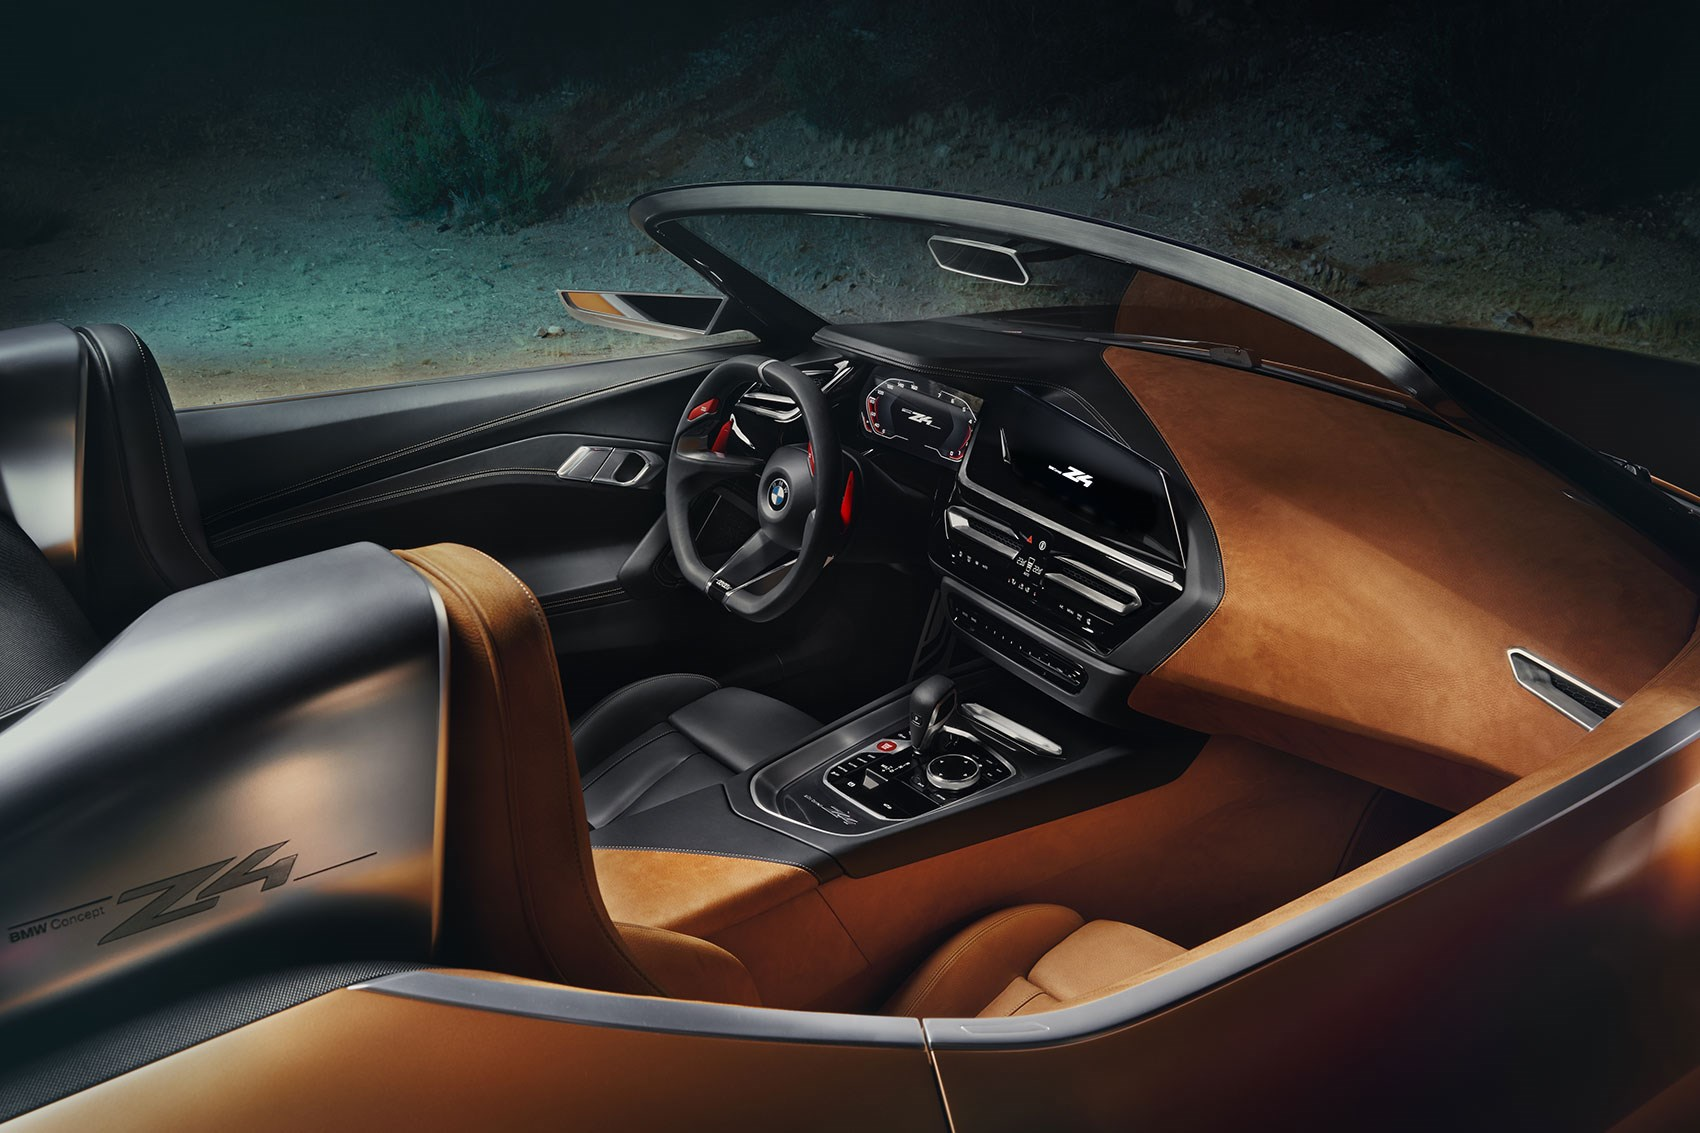 Great ... New BMW Z4 Two Tone Cabin For Concept Z4: Black And Focused For Driver,  Tan Suede For Passenger (a Familiar Motif) ...